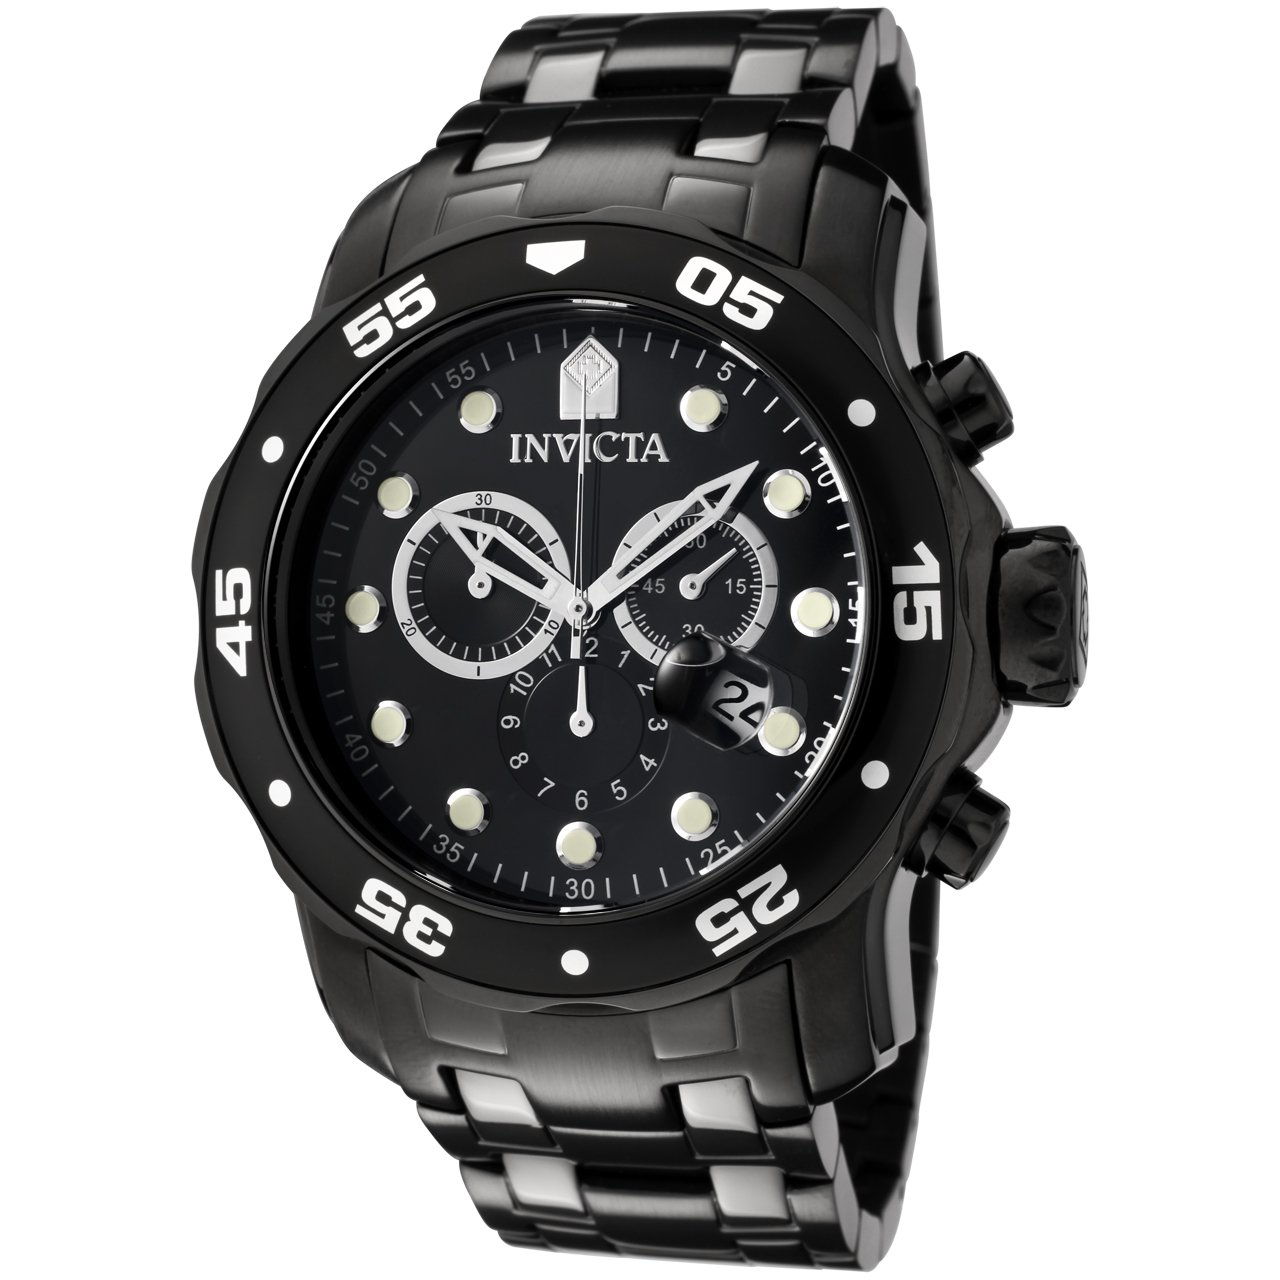 Popular Watch Reviews: # Invicta-0076 Men Watch Review